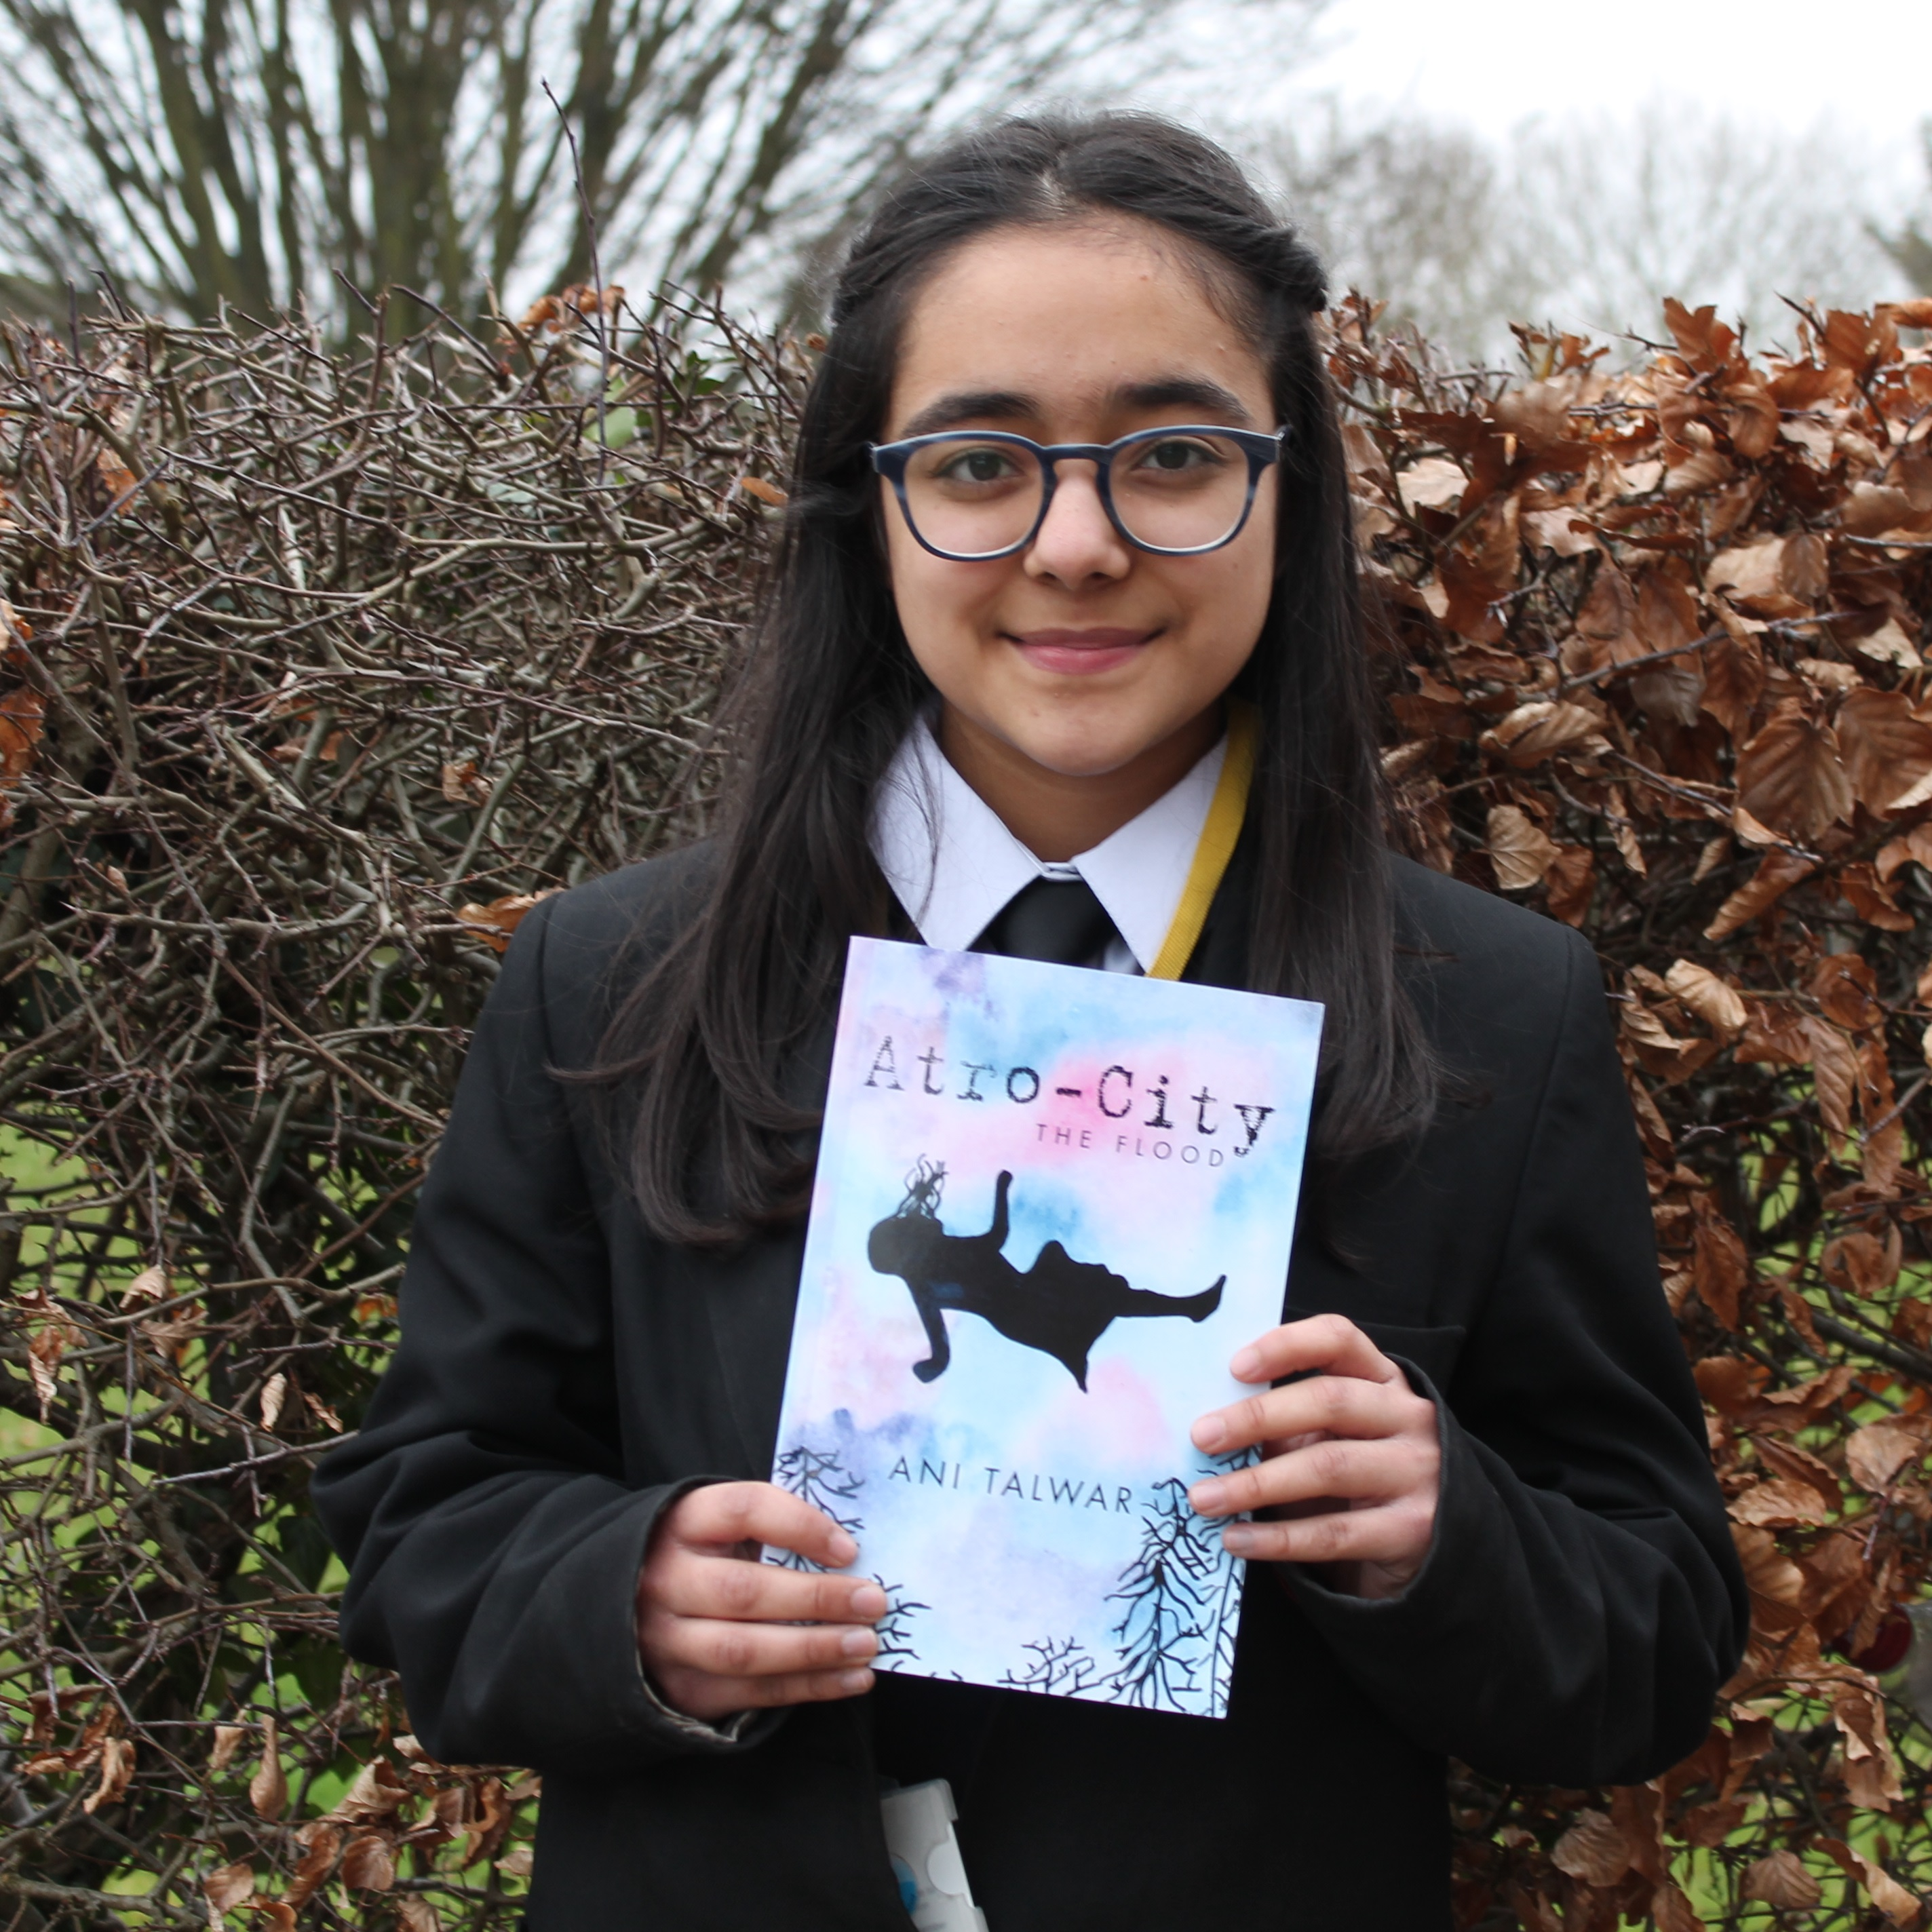 Meet young author of Atro-City